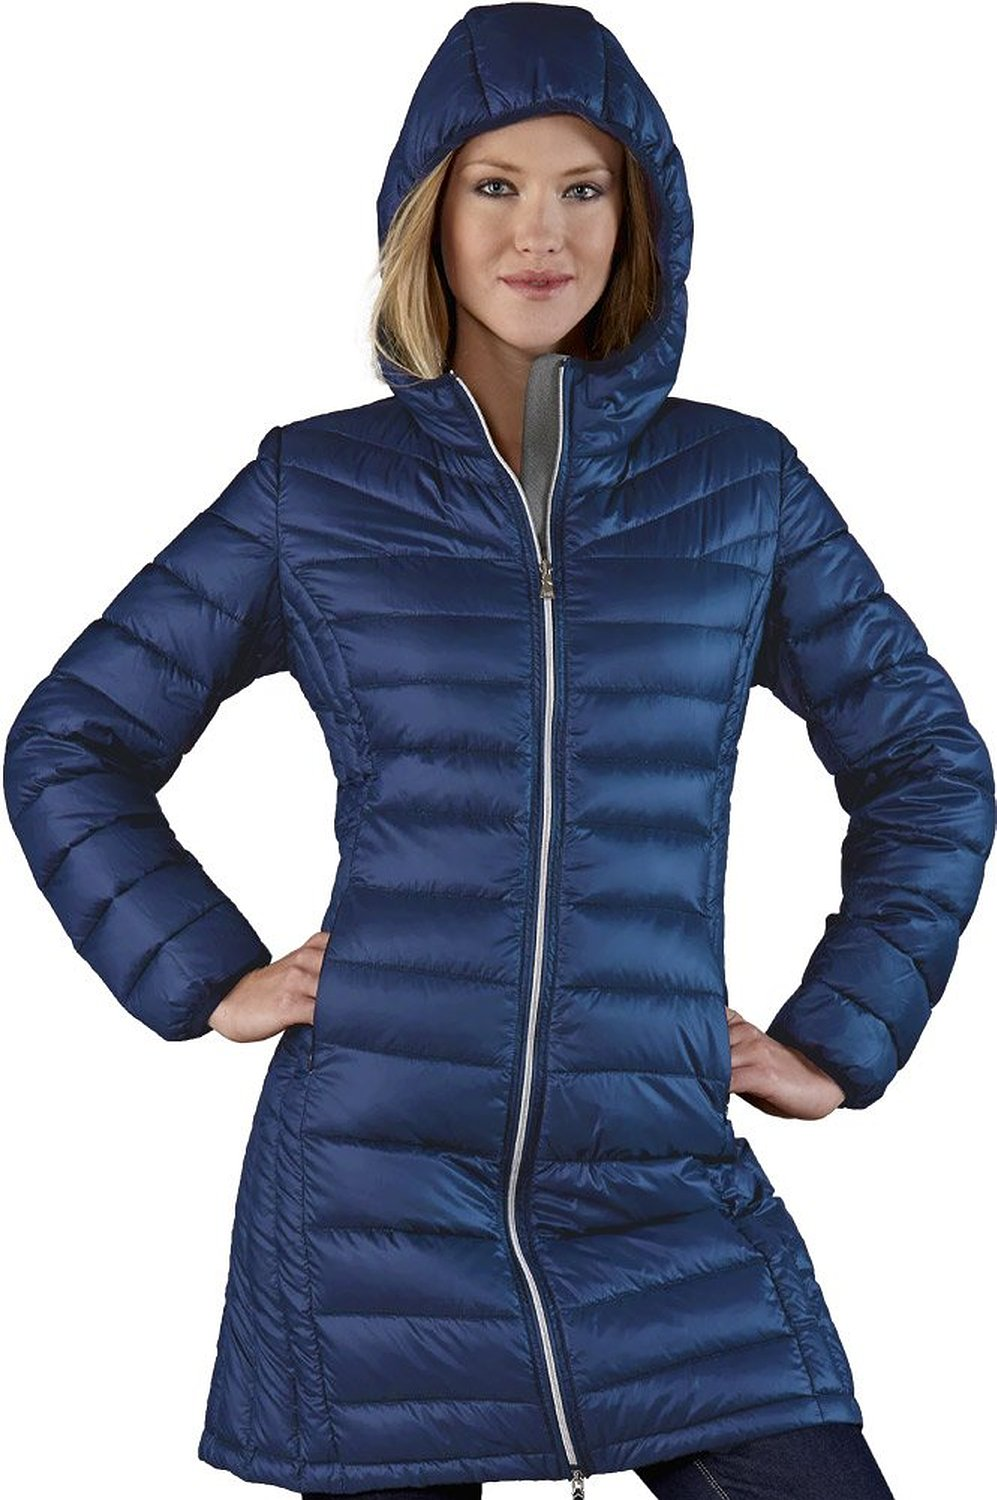 Images of Long Down Vest Women S - Reikian